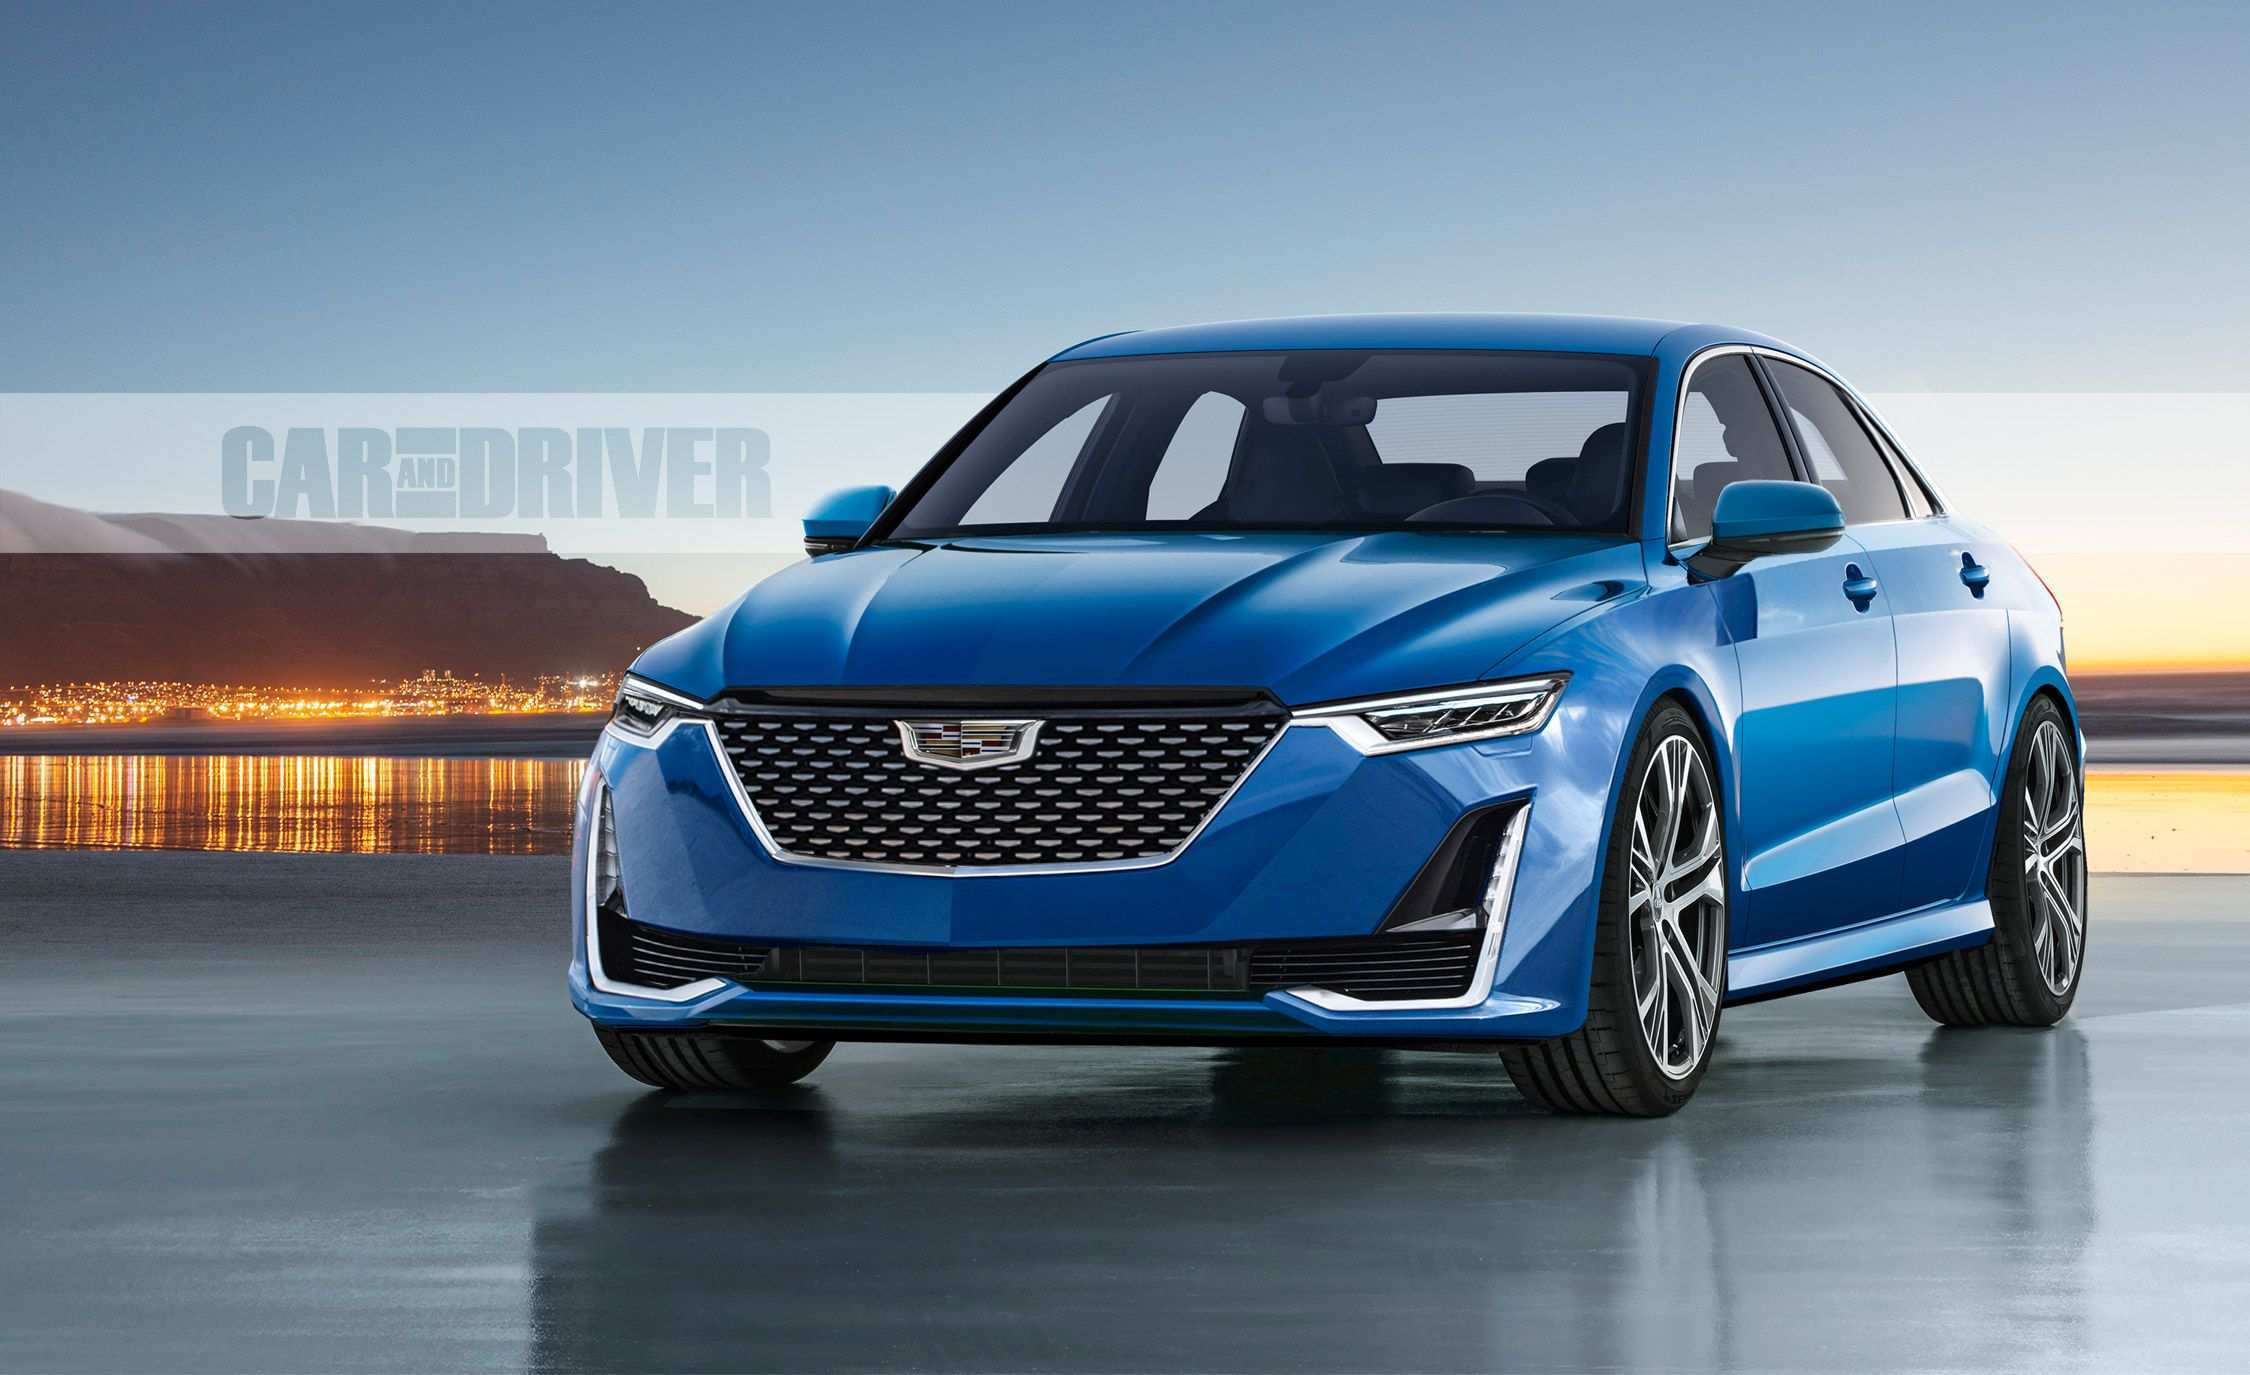 63 Gallery of 2020 Cadillac Cts Exterior for 2020 Cadillac Cts